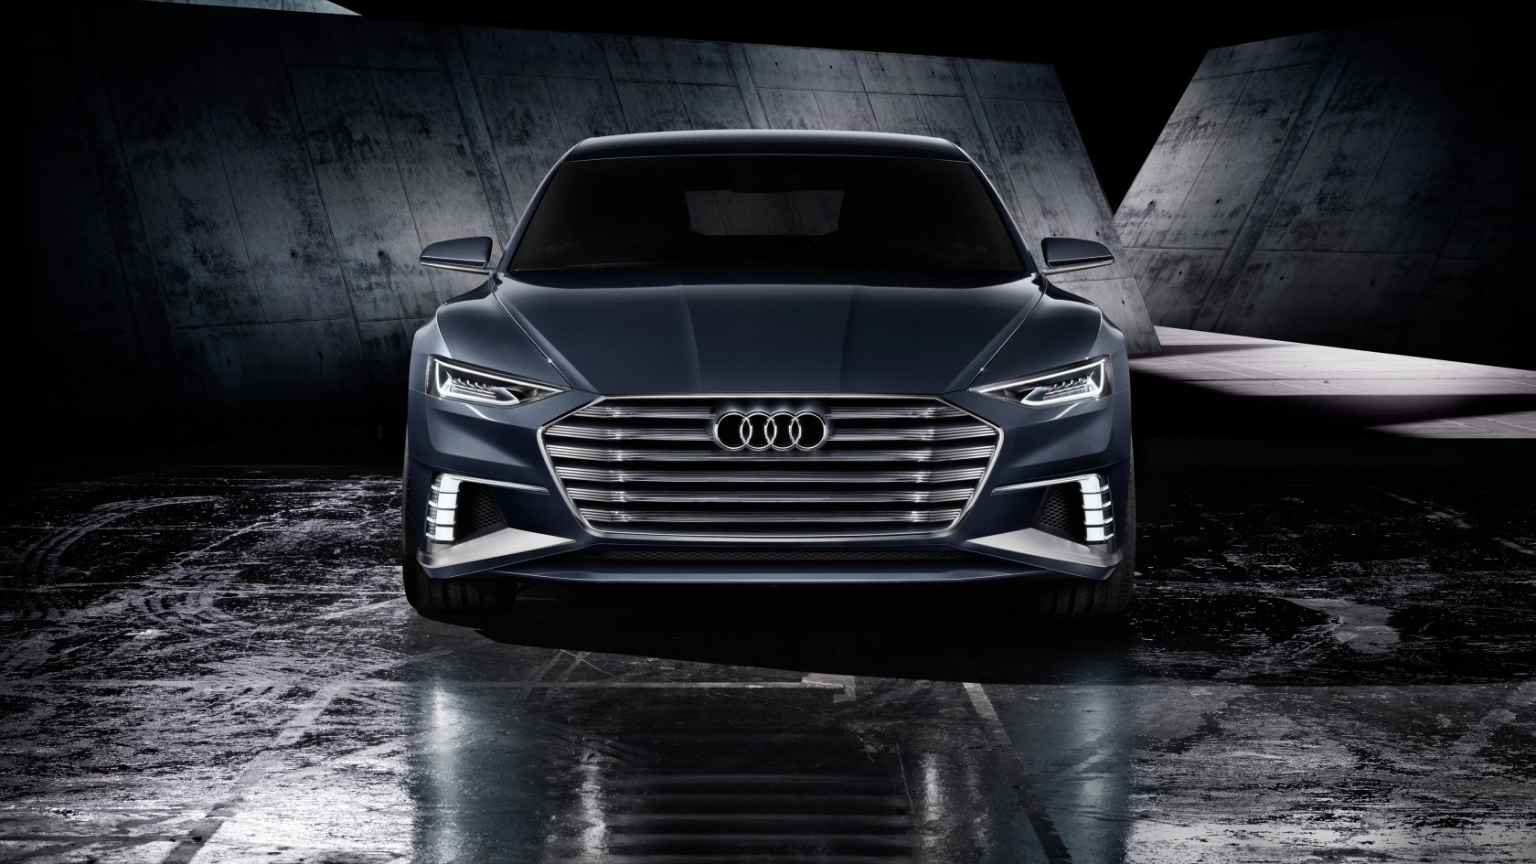 Audi Prologue Avant Front View for 1536 x 864 HDTV resolution